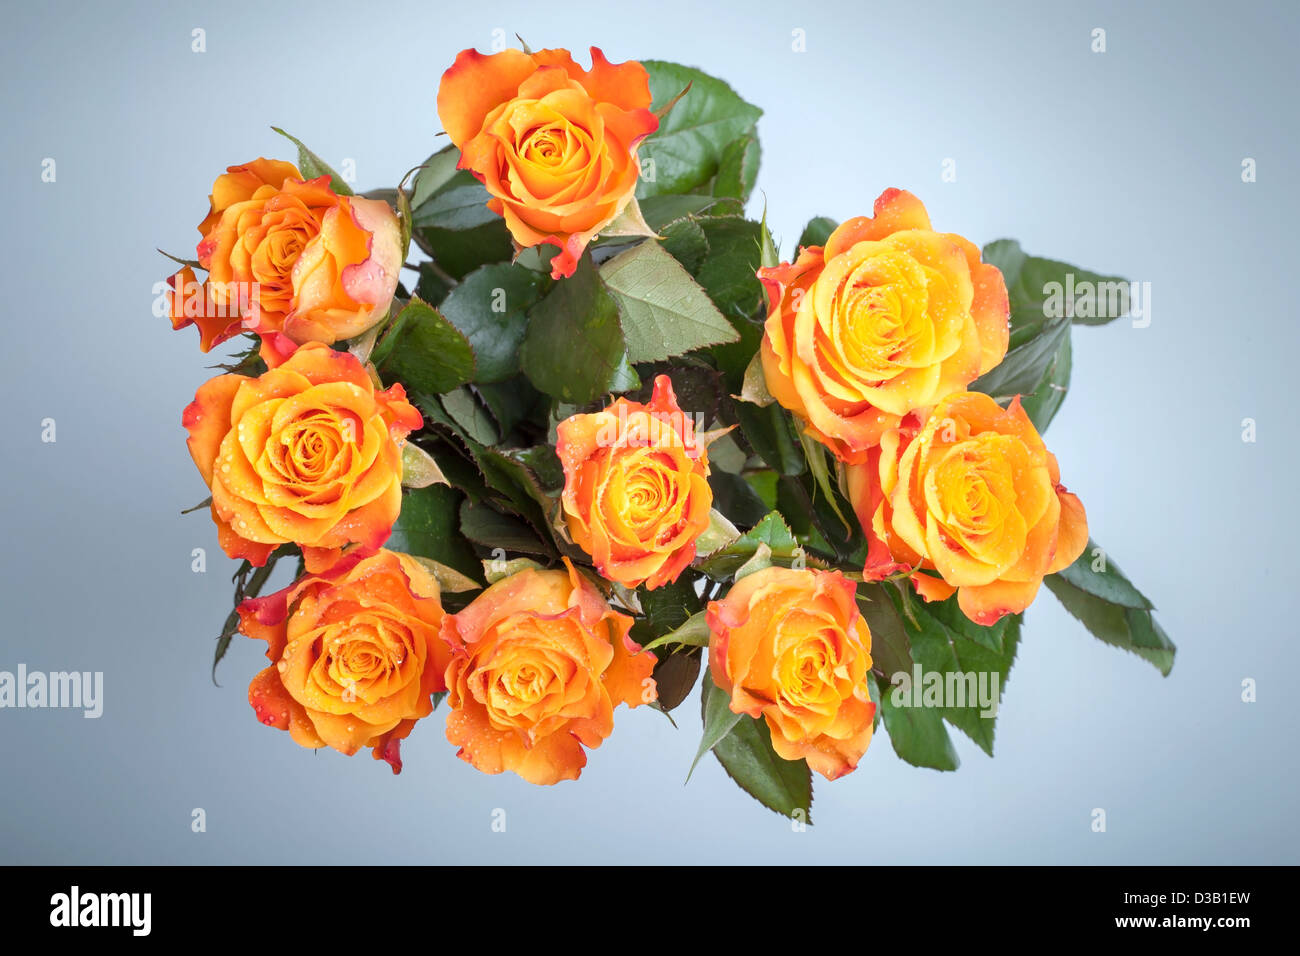 Bouquet of red and yellow roses flowers top view above light blue bouquet of red and yellow roses flowers top view above light blue background izmirmasajfo